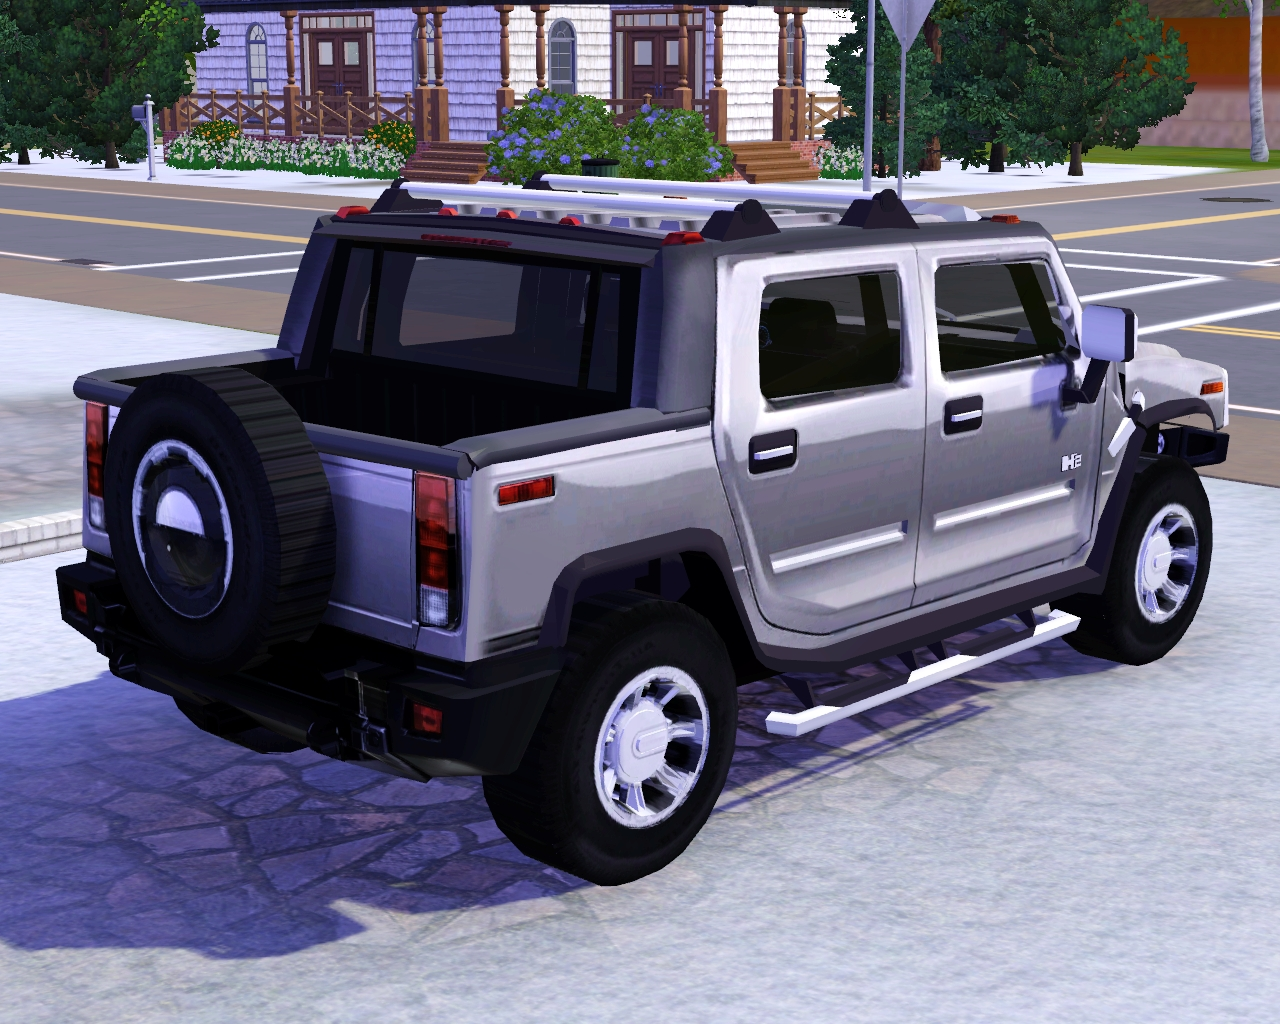 2005 Hummer H2 SUT by Fresh-Prince